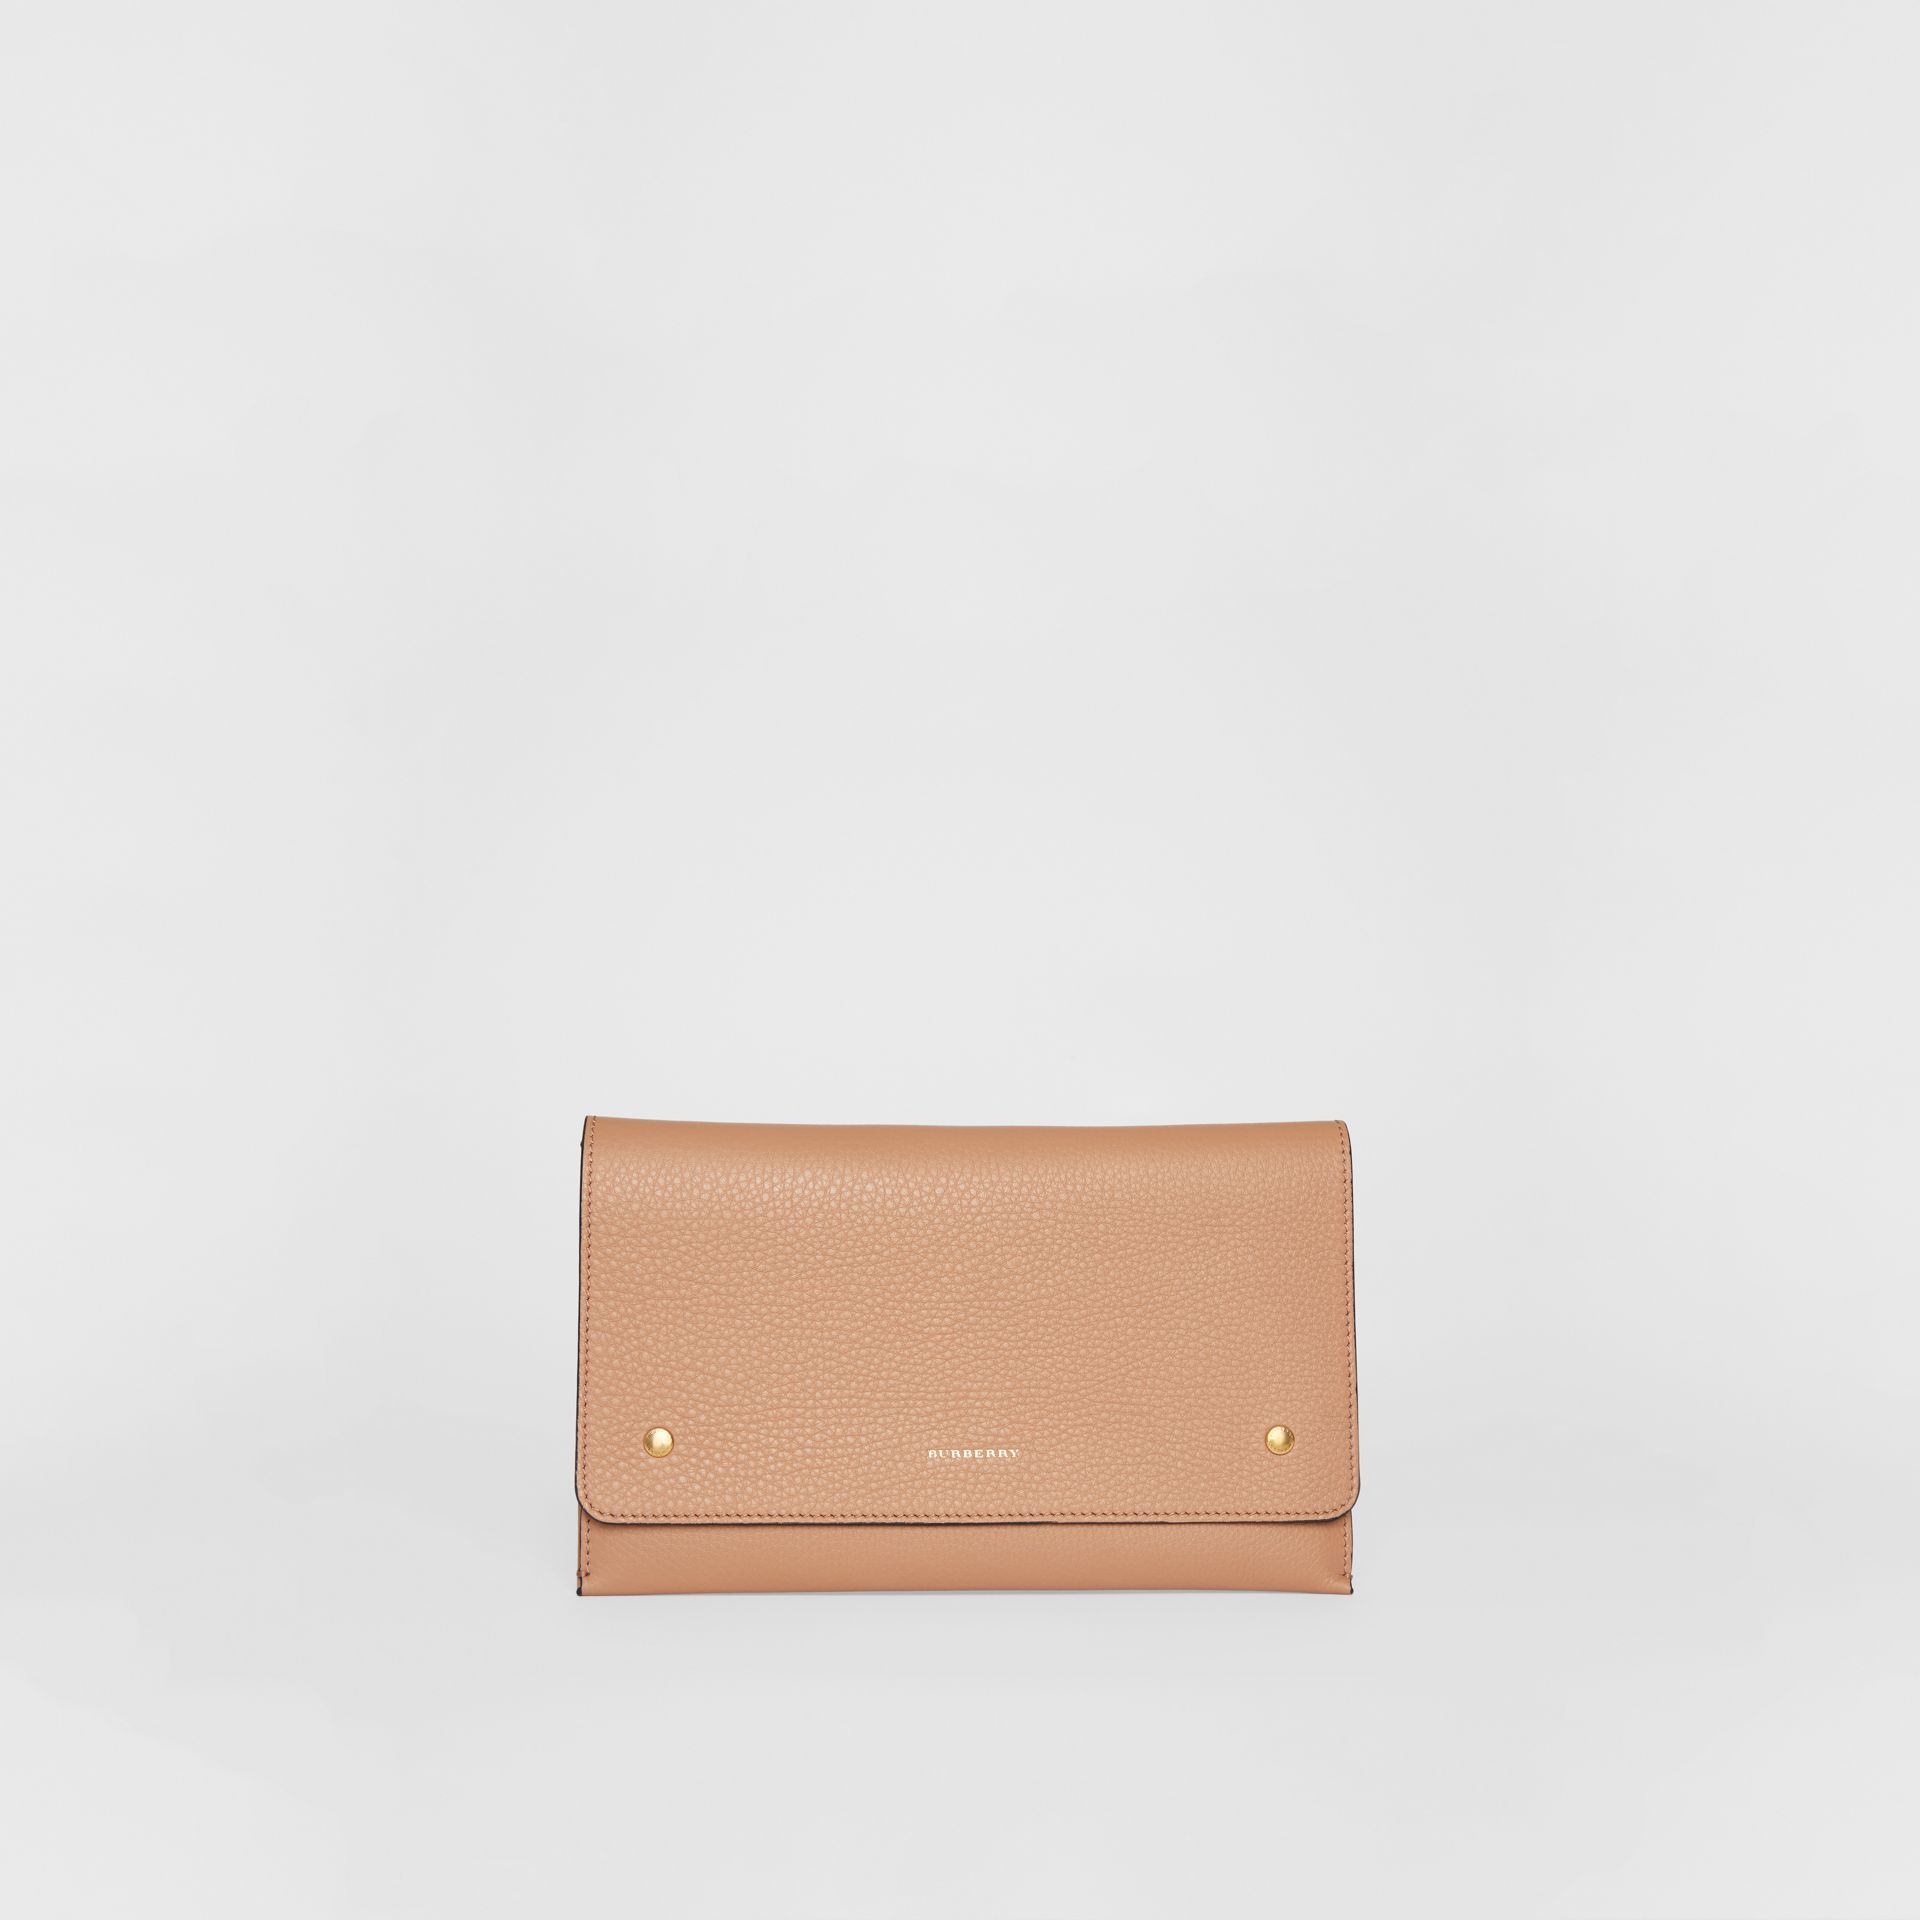 Two-tone Leather Wristlet Clutch in Light Camel - Women | Burberry United Kingdom - gallery image 3